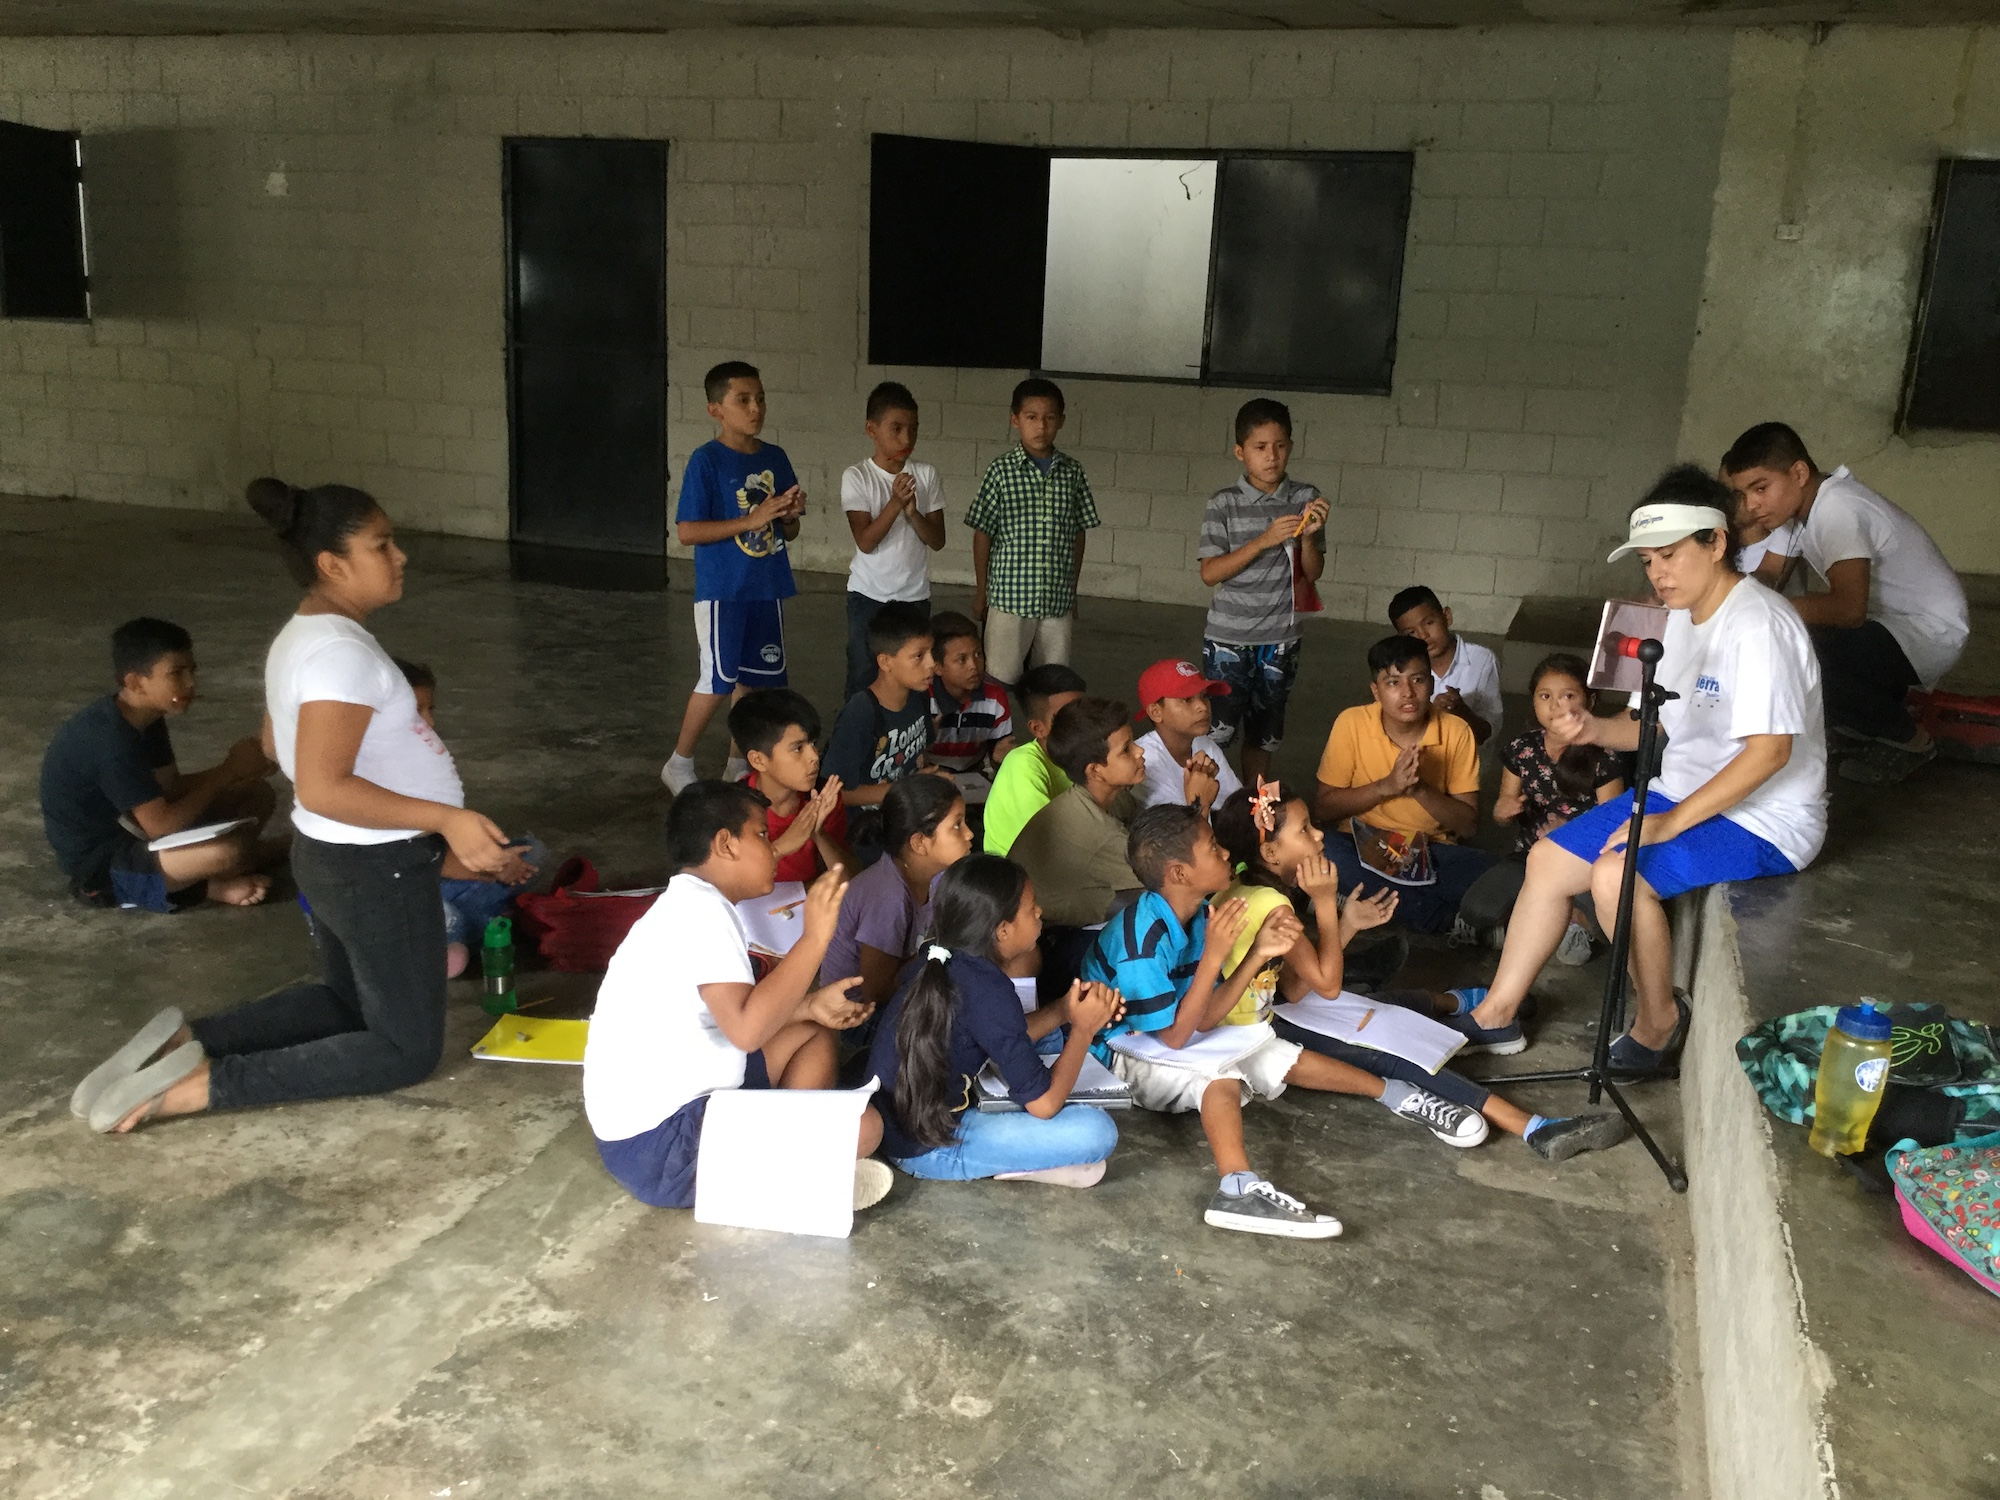 Berklee Online Student Starts Nonprofit to Provide Honduran Children Music Education